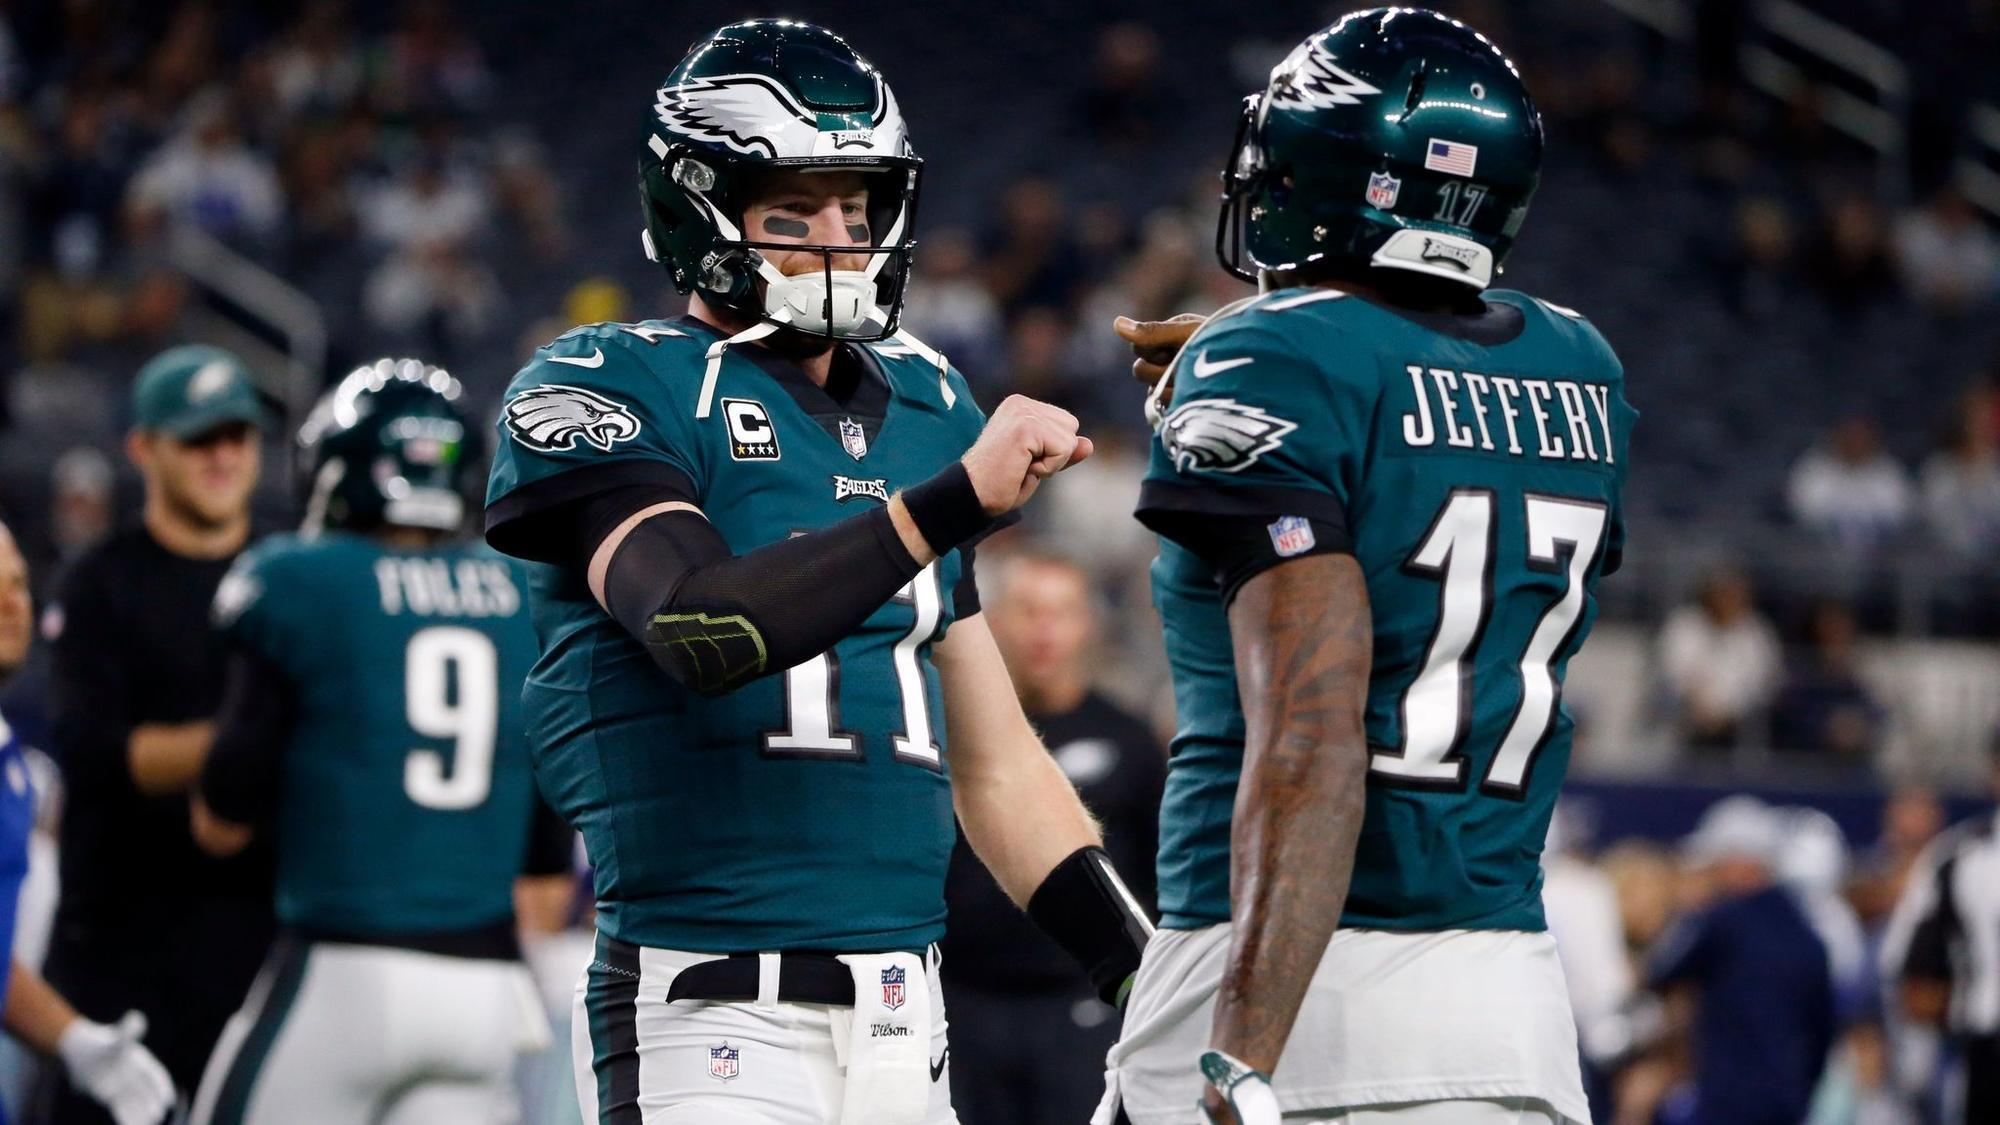 0f7c3a8db57 Eagles: Can Bears stop the Eagles' offense and score themselves? - Chicago  Tribune